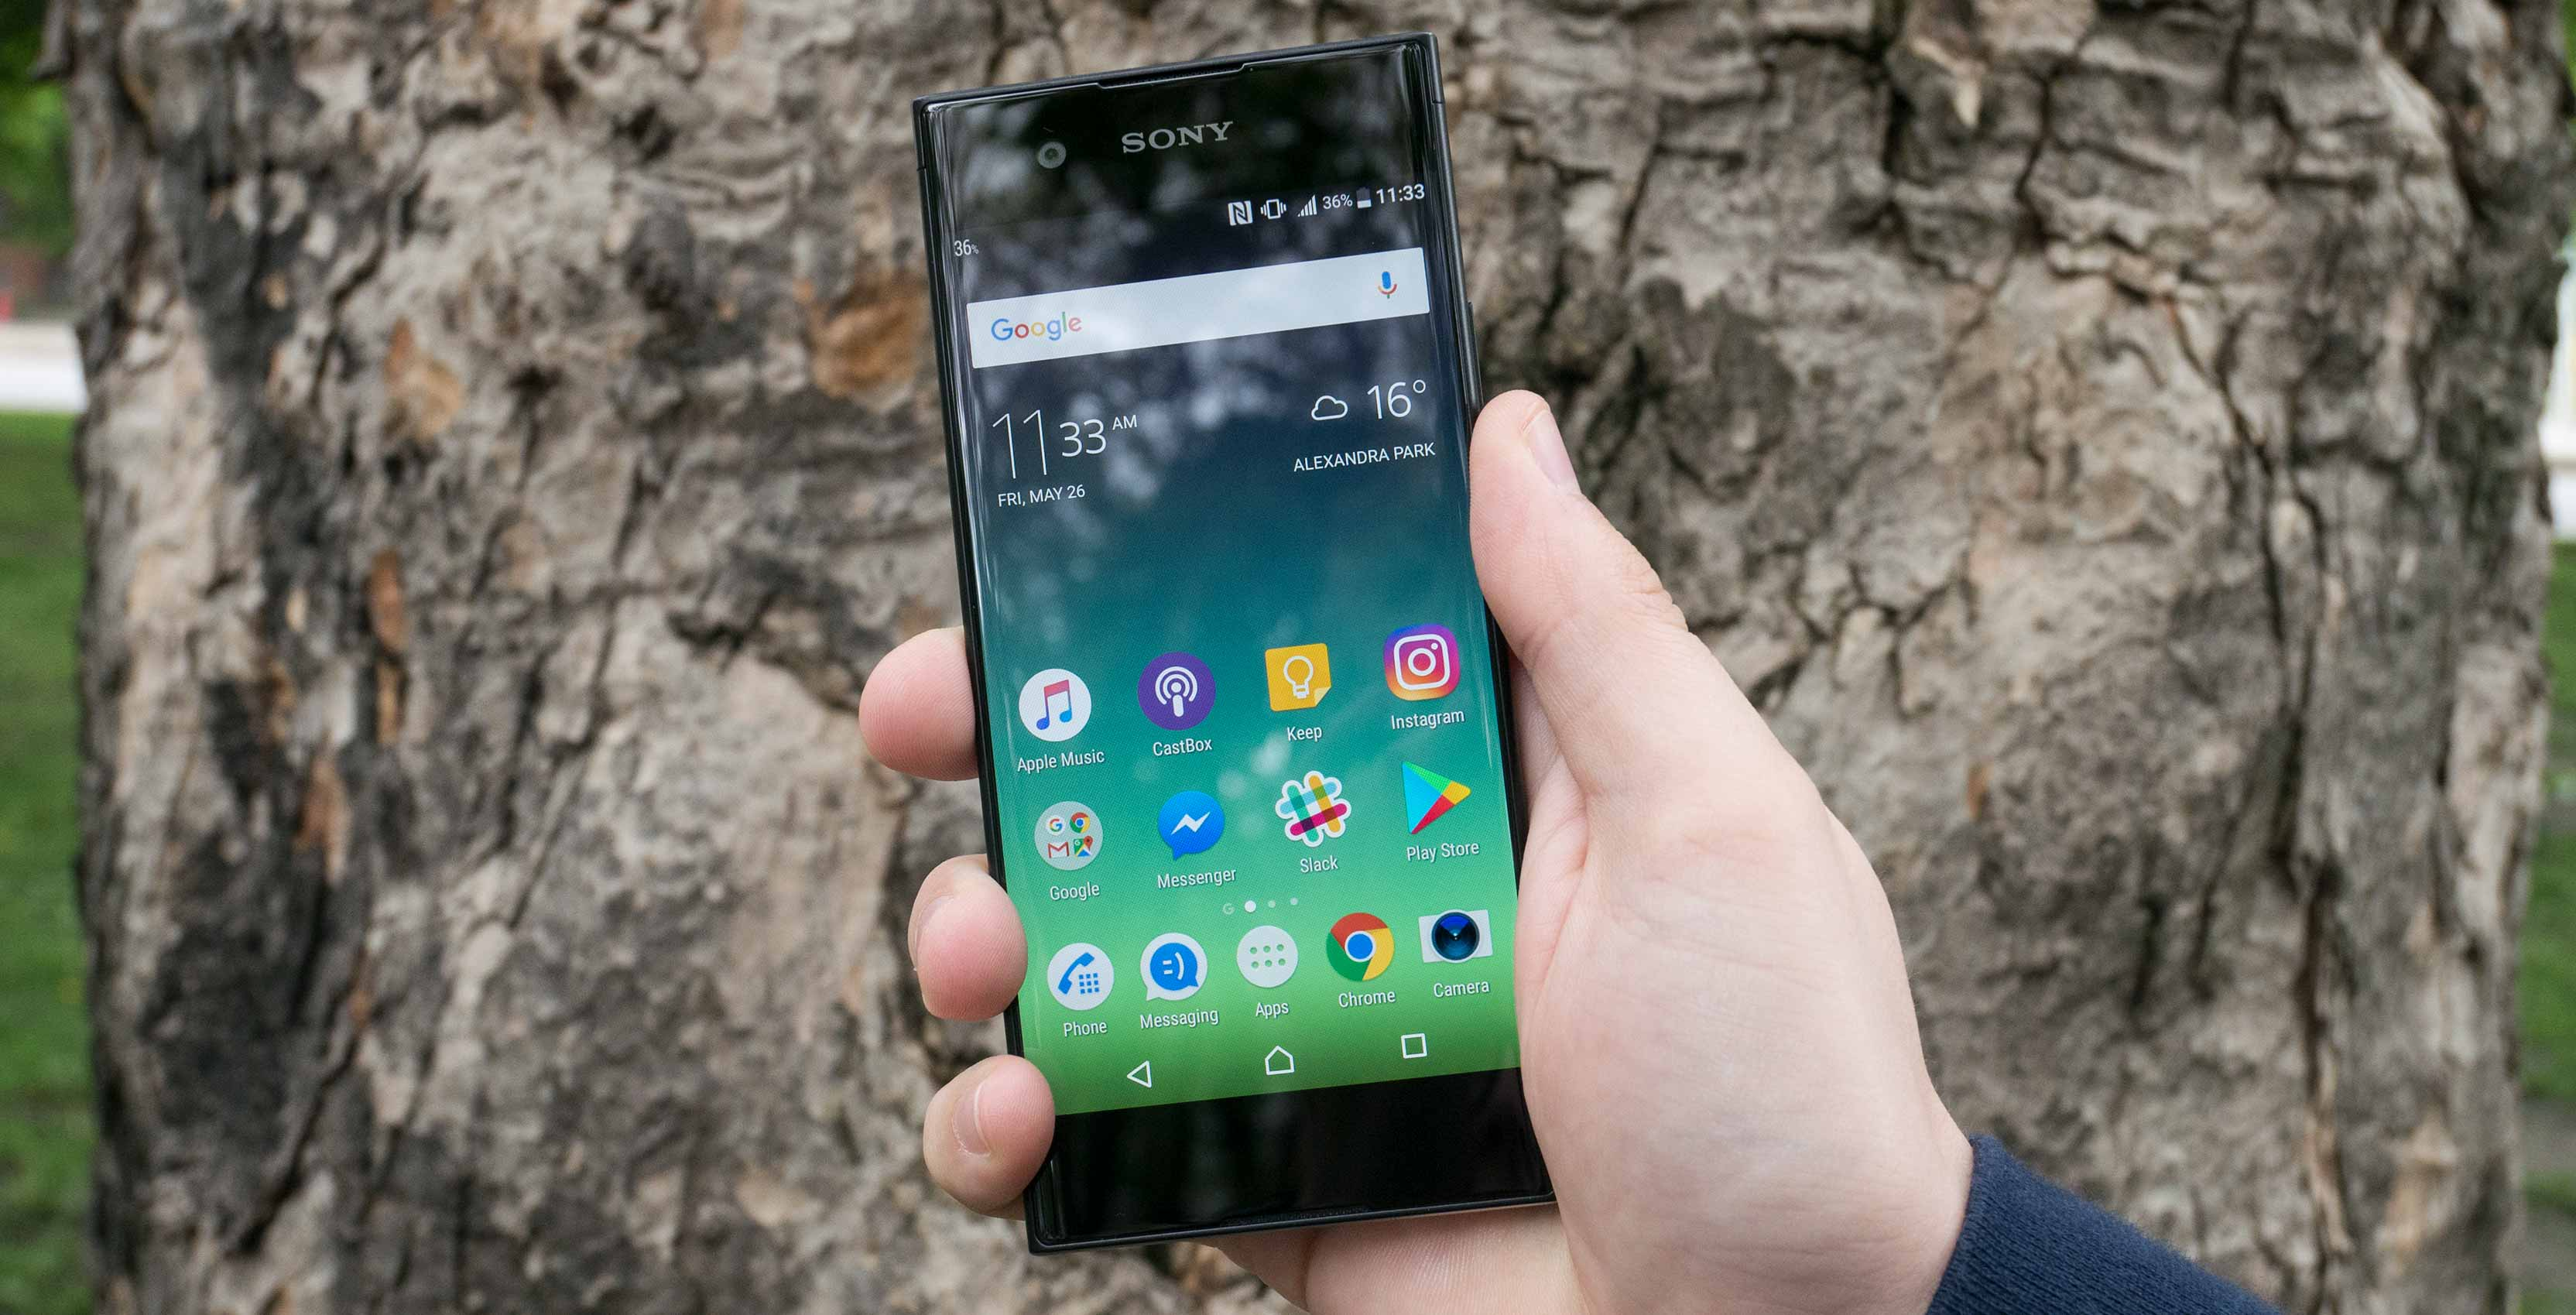 Sony Xperia XA1 Review: Camera-focused budget phone that doesn't stand out